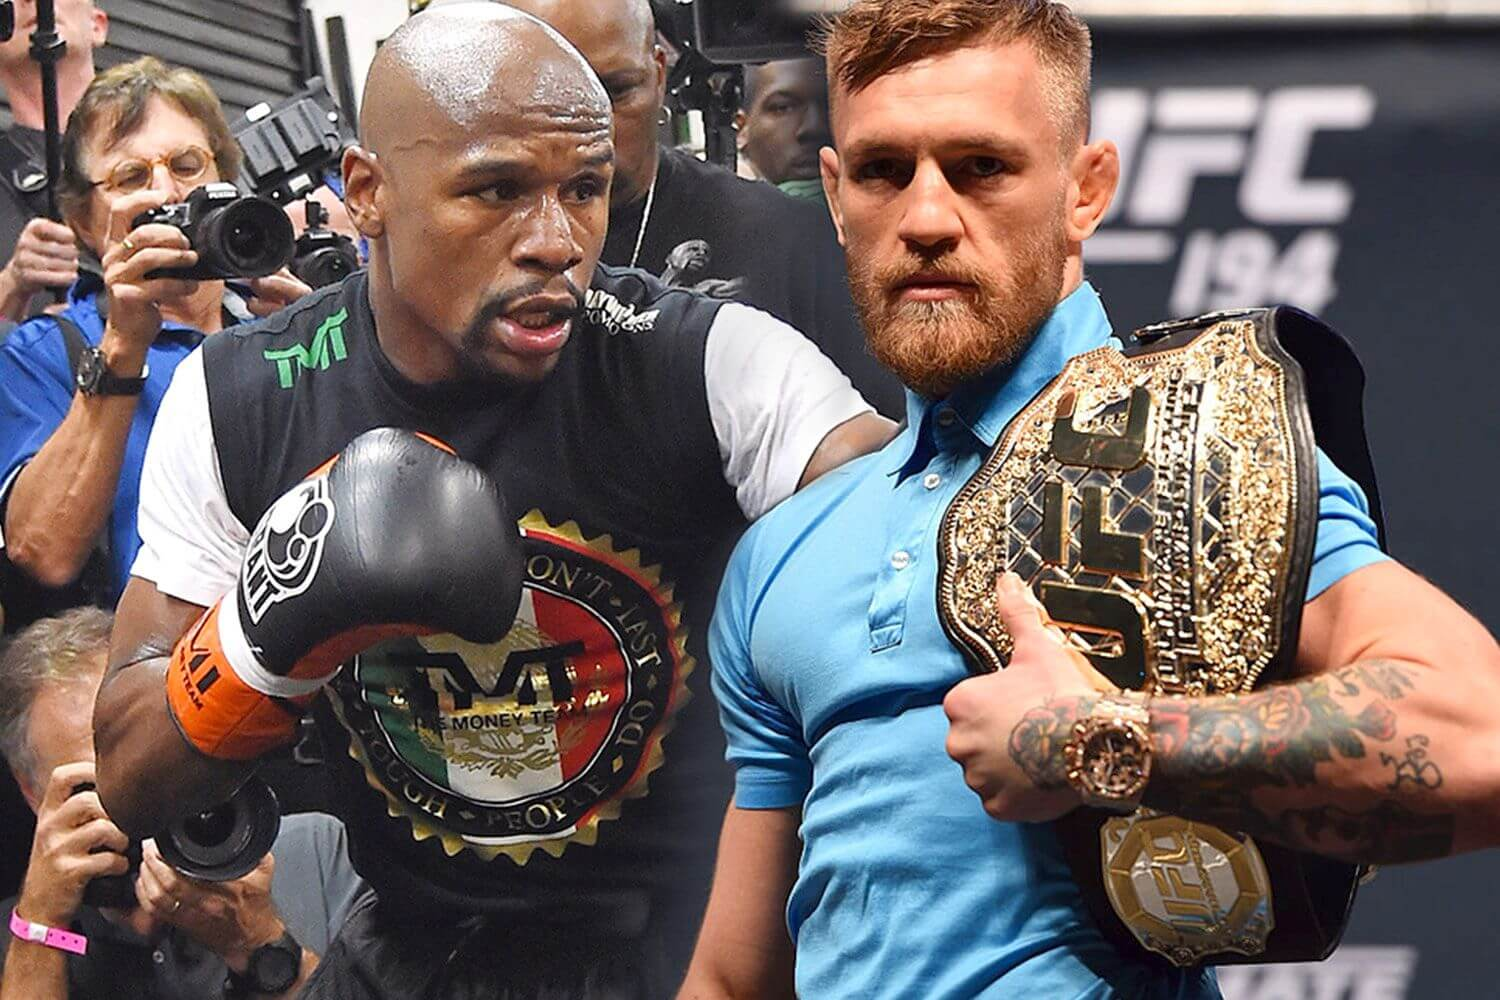 McGregor versus Mayweather: Is the Upset Really Possible?